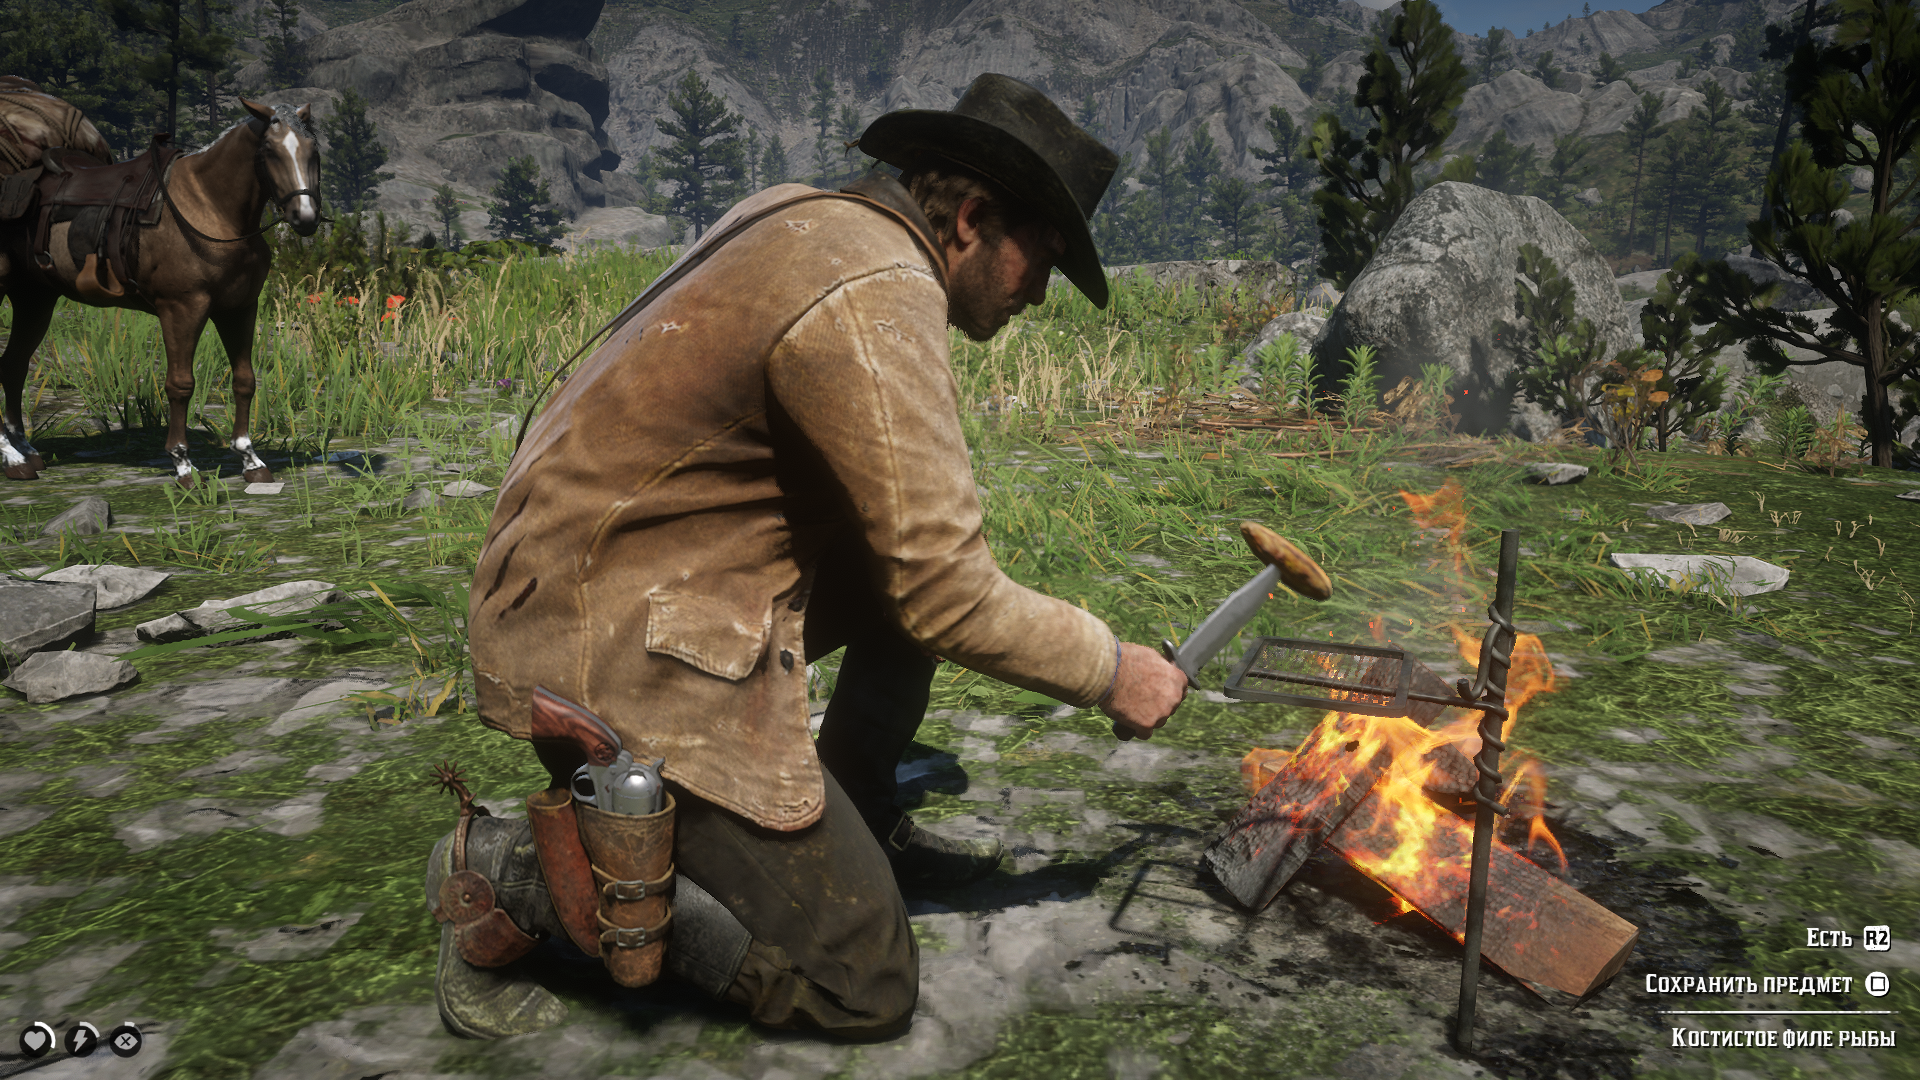 5b524dffe65a49ee189adfa36c0db06d.png - Red Dead Redemption 2